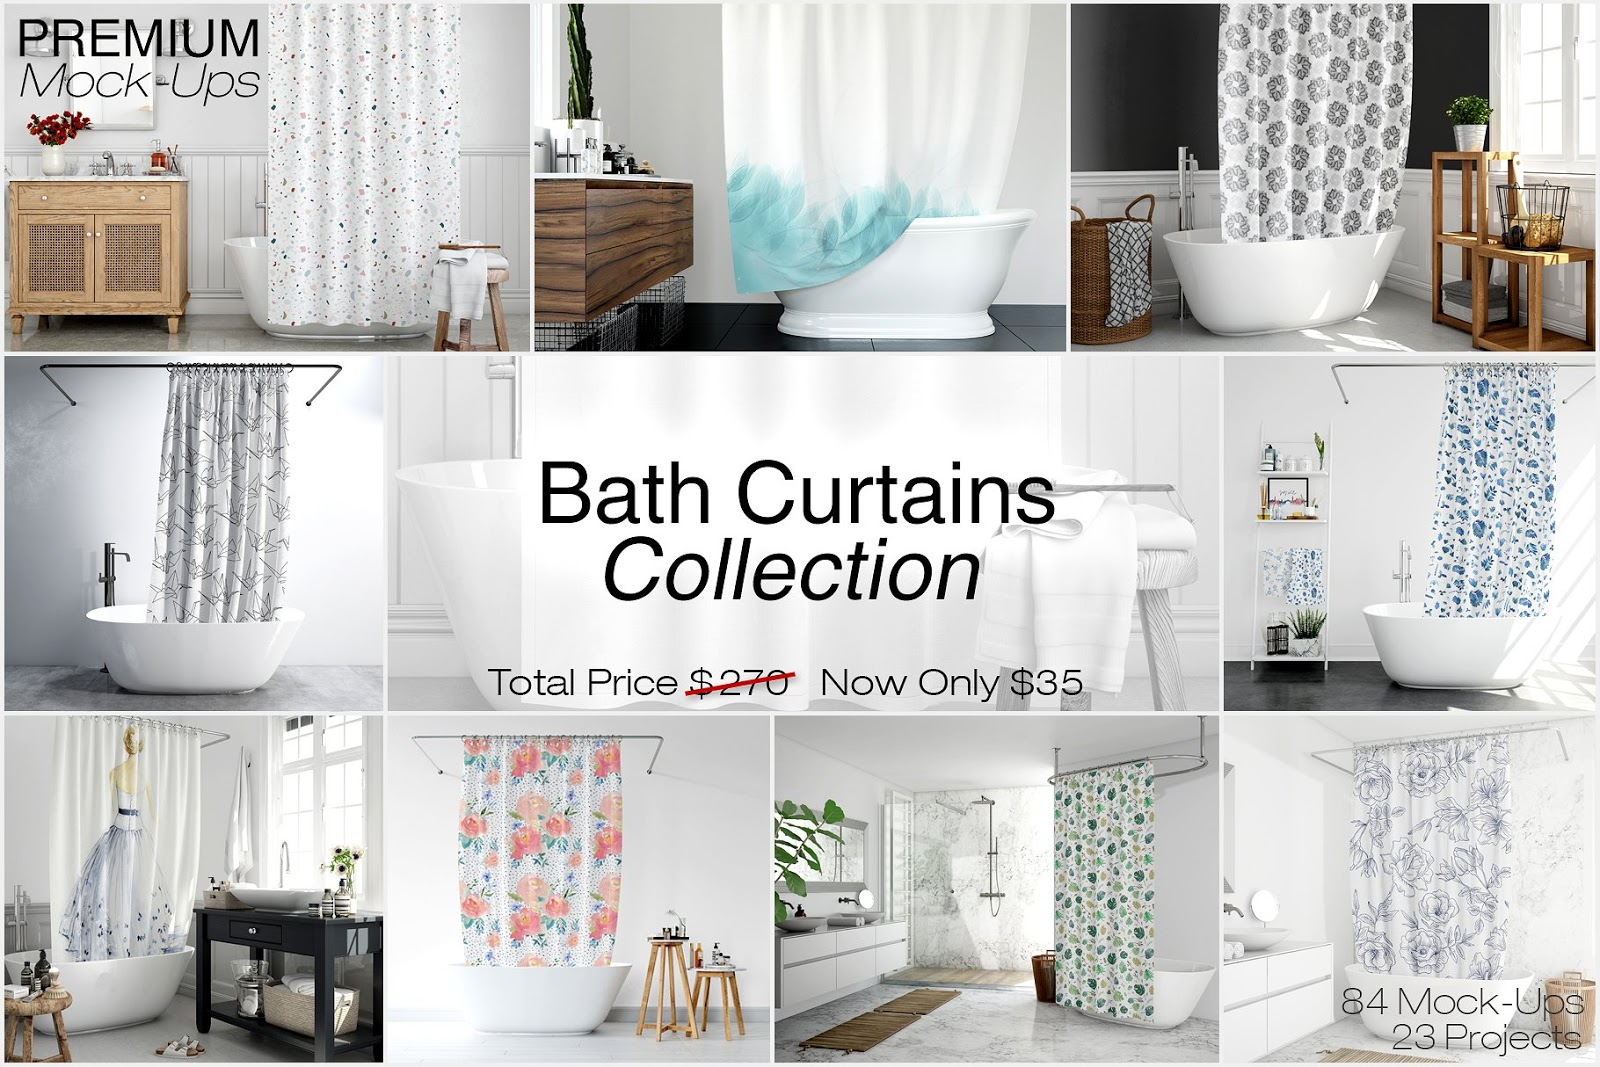 Bath Curtains Mockup Collection